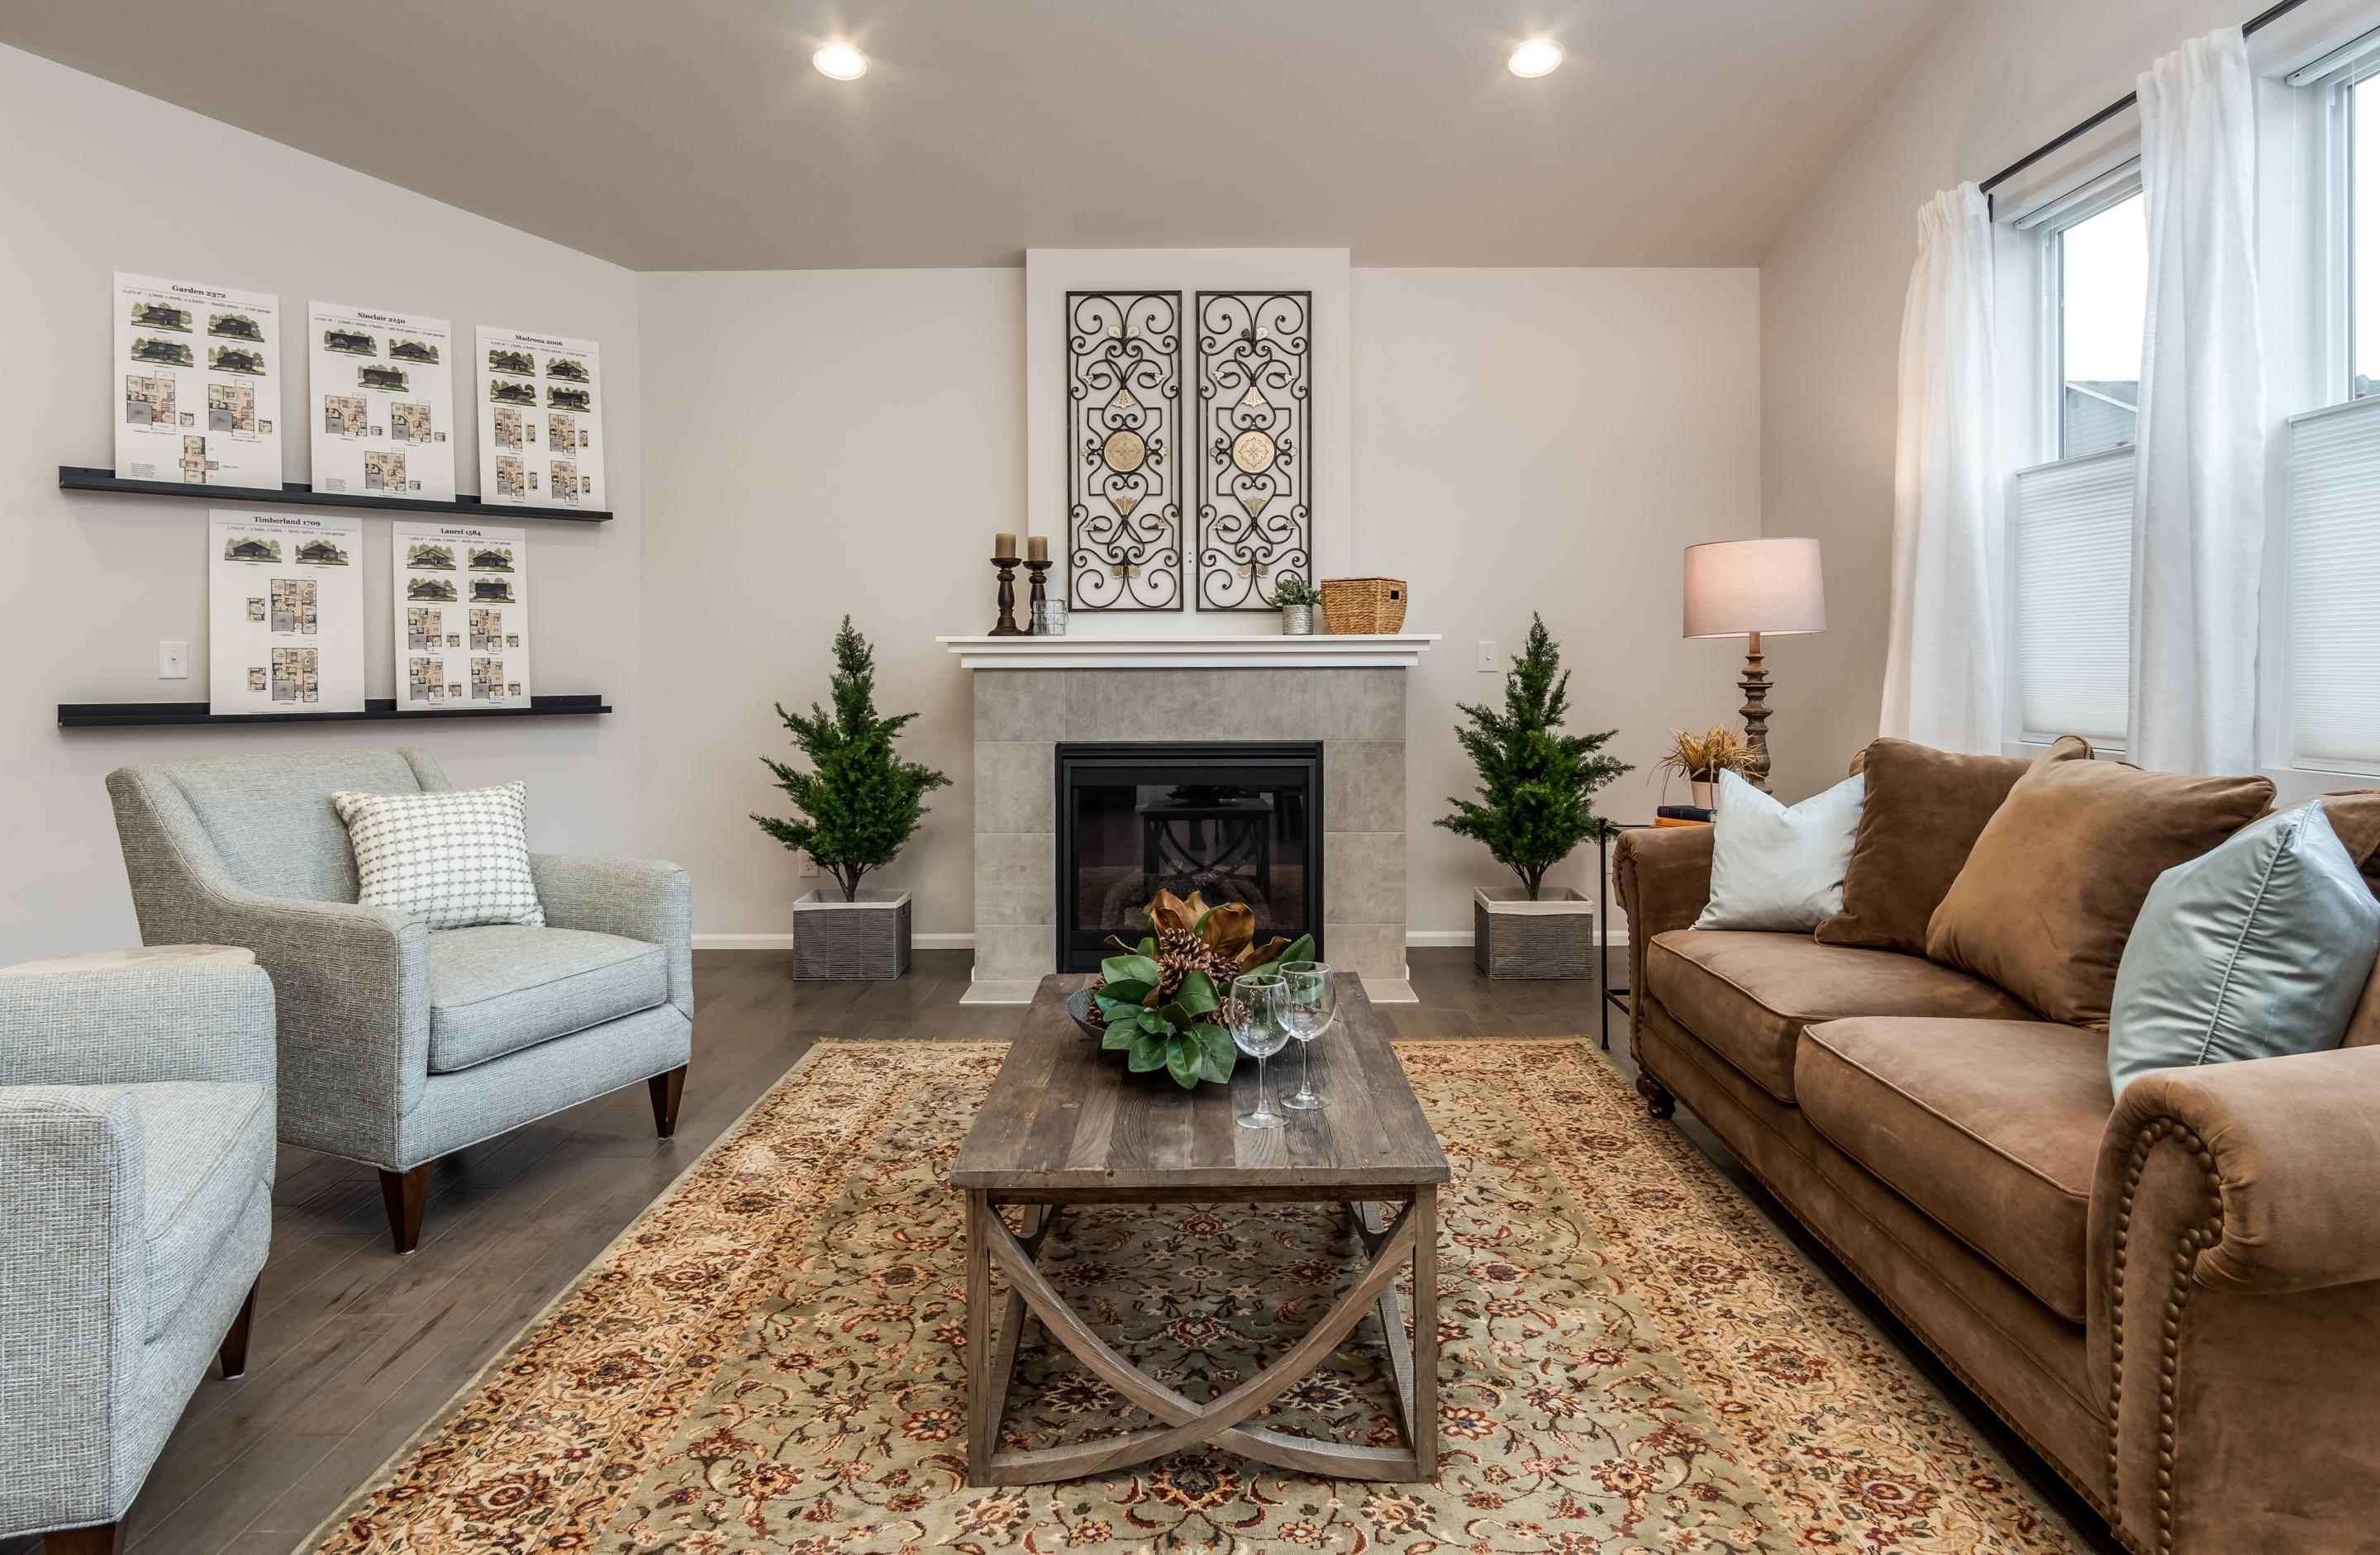 Living Area featured in the CC Sinclair By Landed Gentry Homes in Bellingham, WA